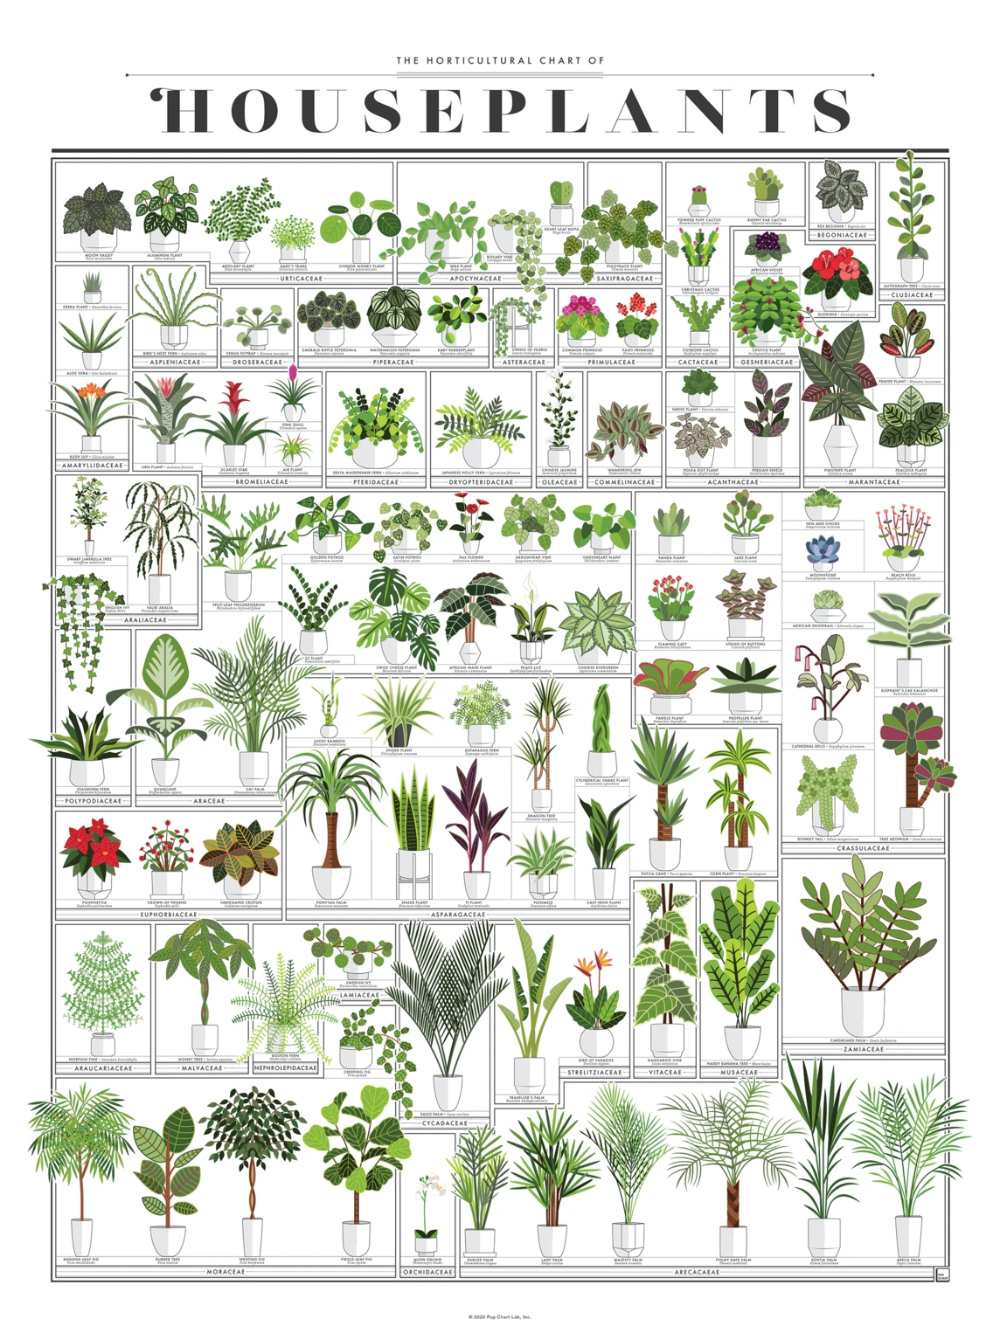 The Horticultural Chart Of Houseplants In 2020 Common House Plants Plant Decor Indoor Plants